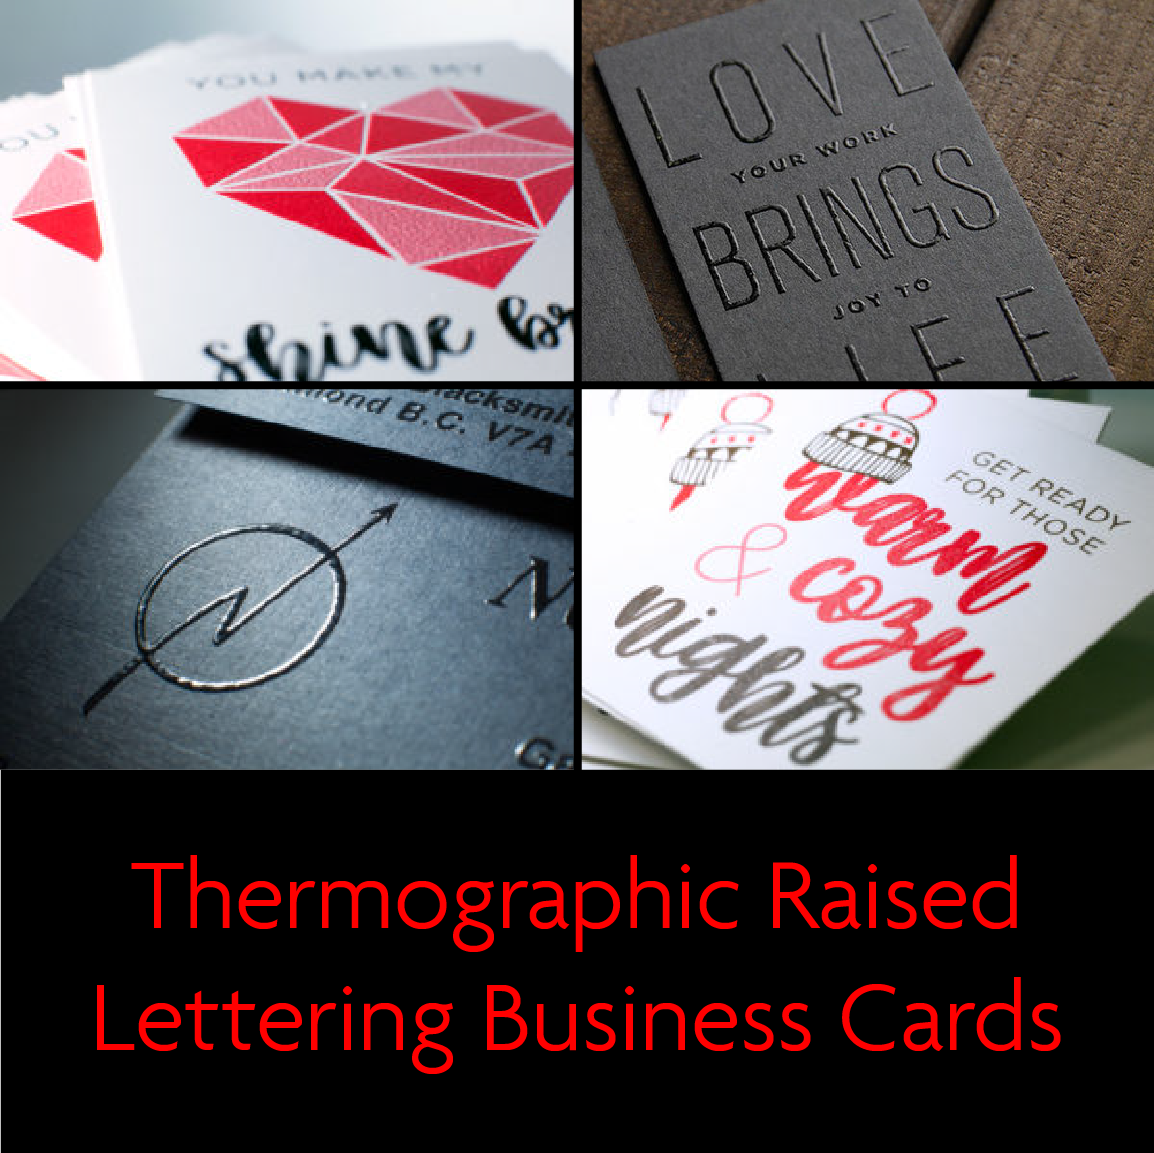 Thermographic Raised Lettering Business Cards